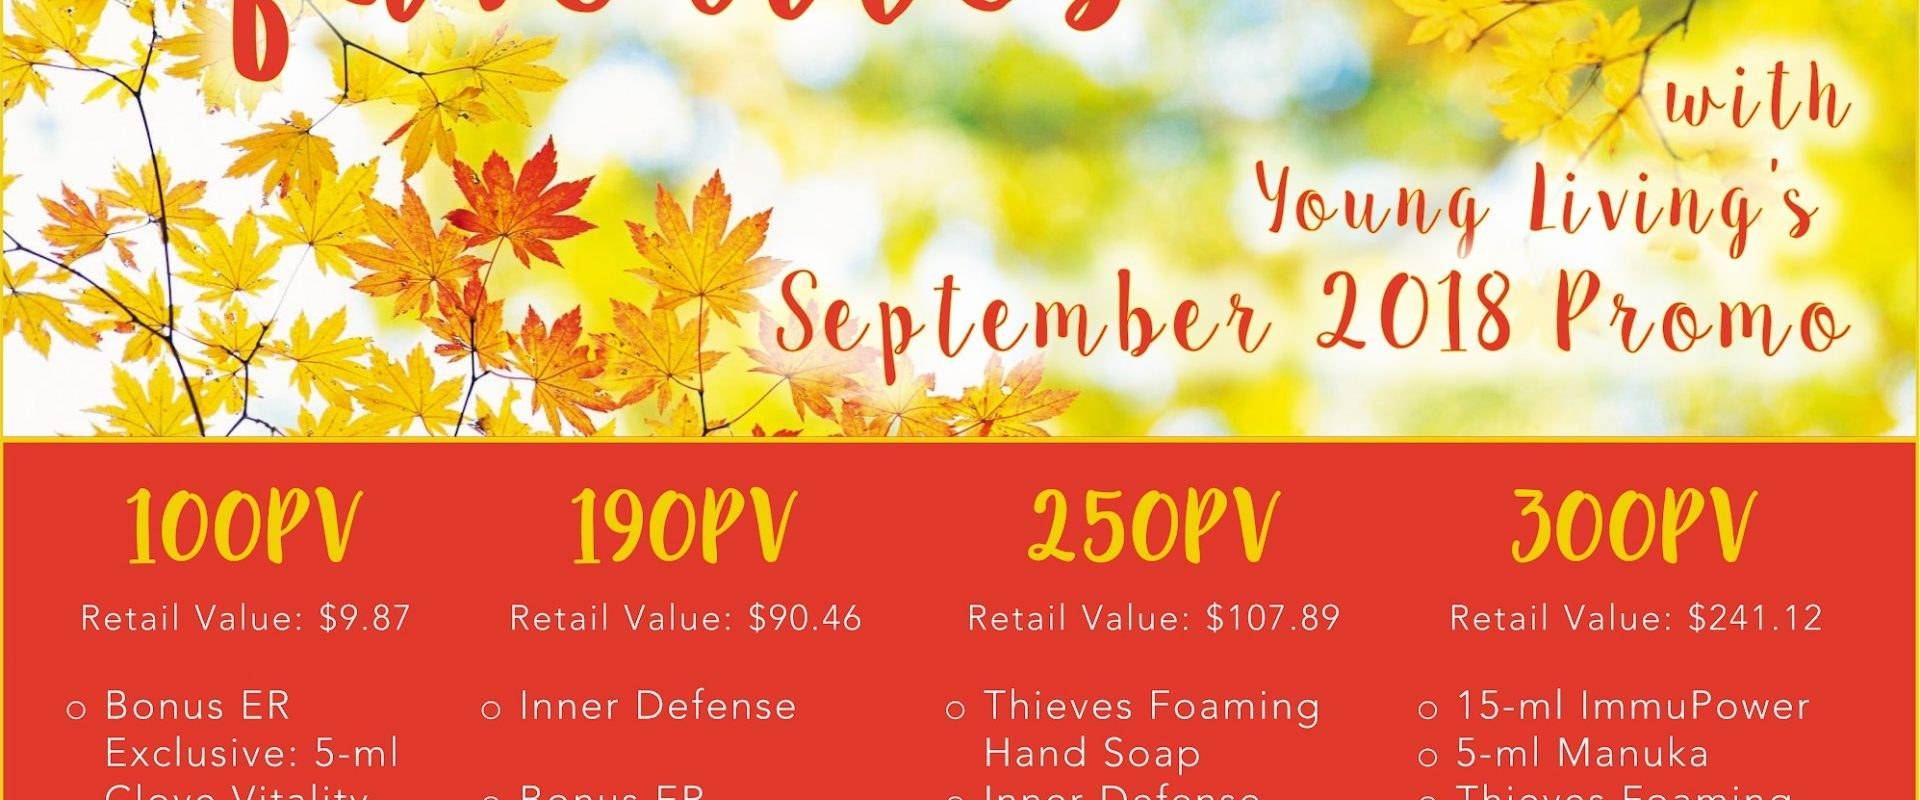 Be Prepared this Fall with the Latest Promo!